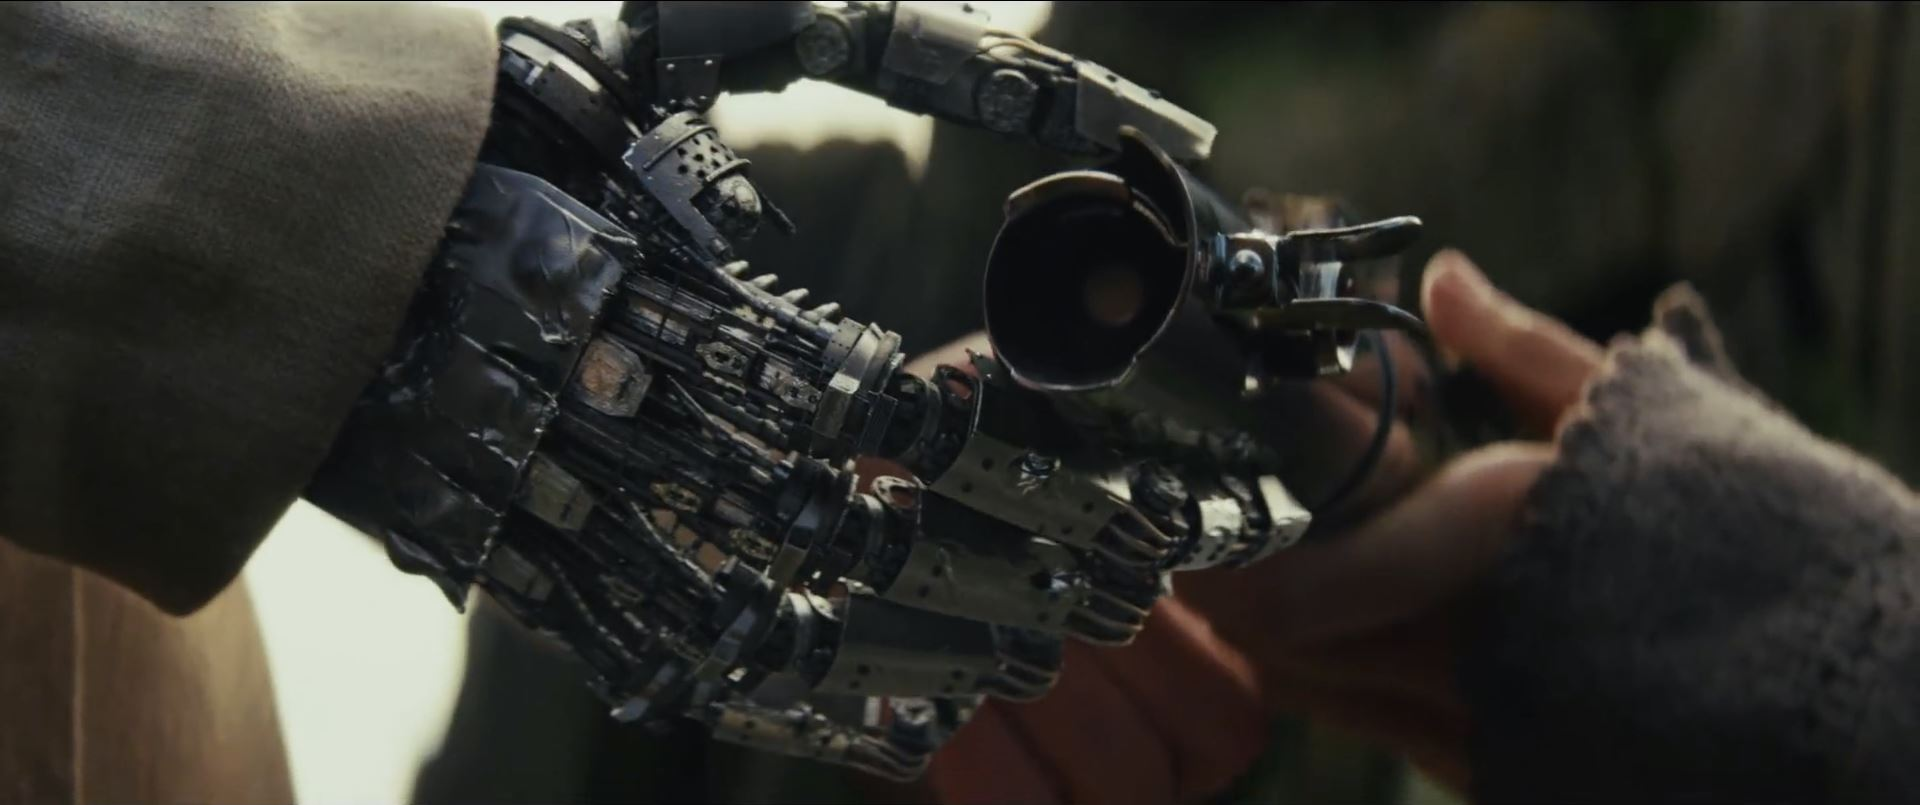 The Last Jedi Trailer - Luke's mechanical hand